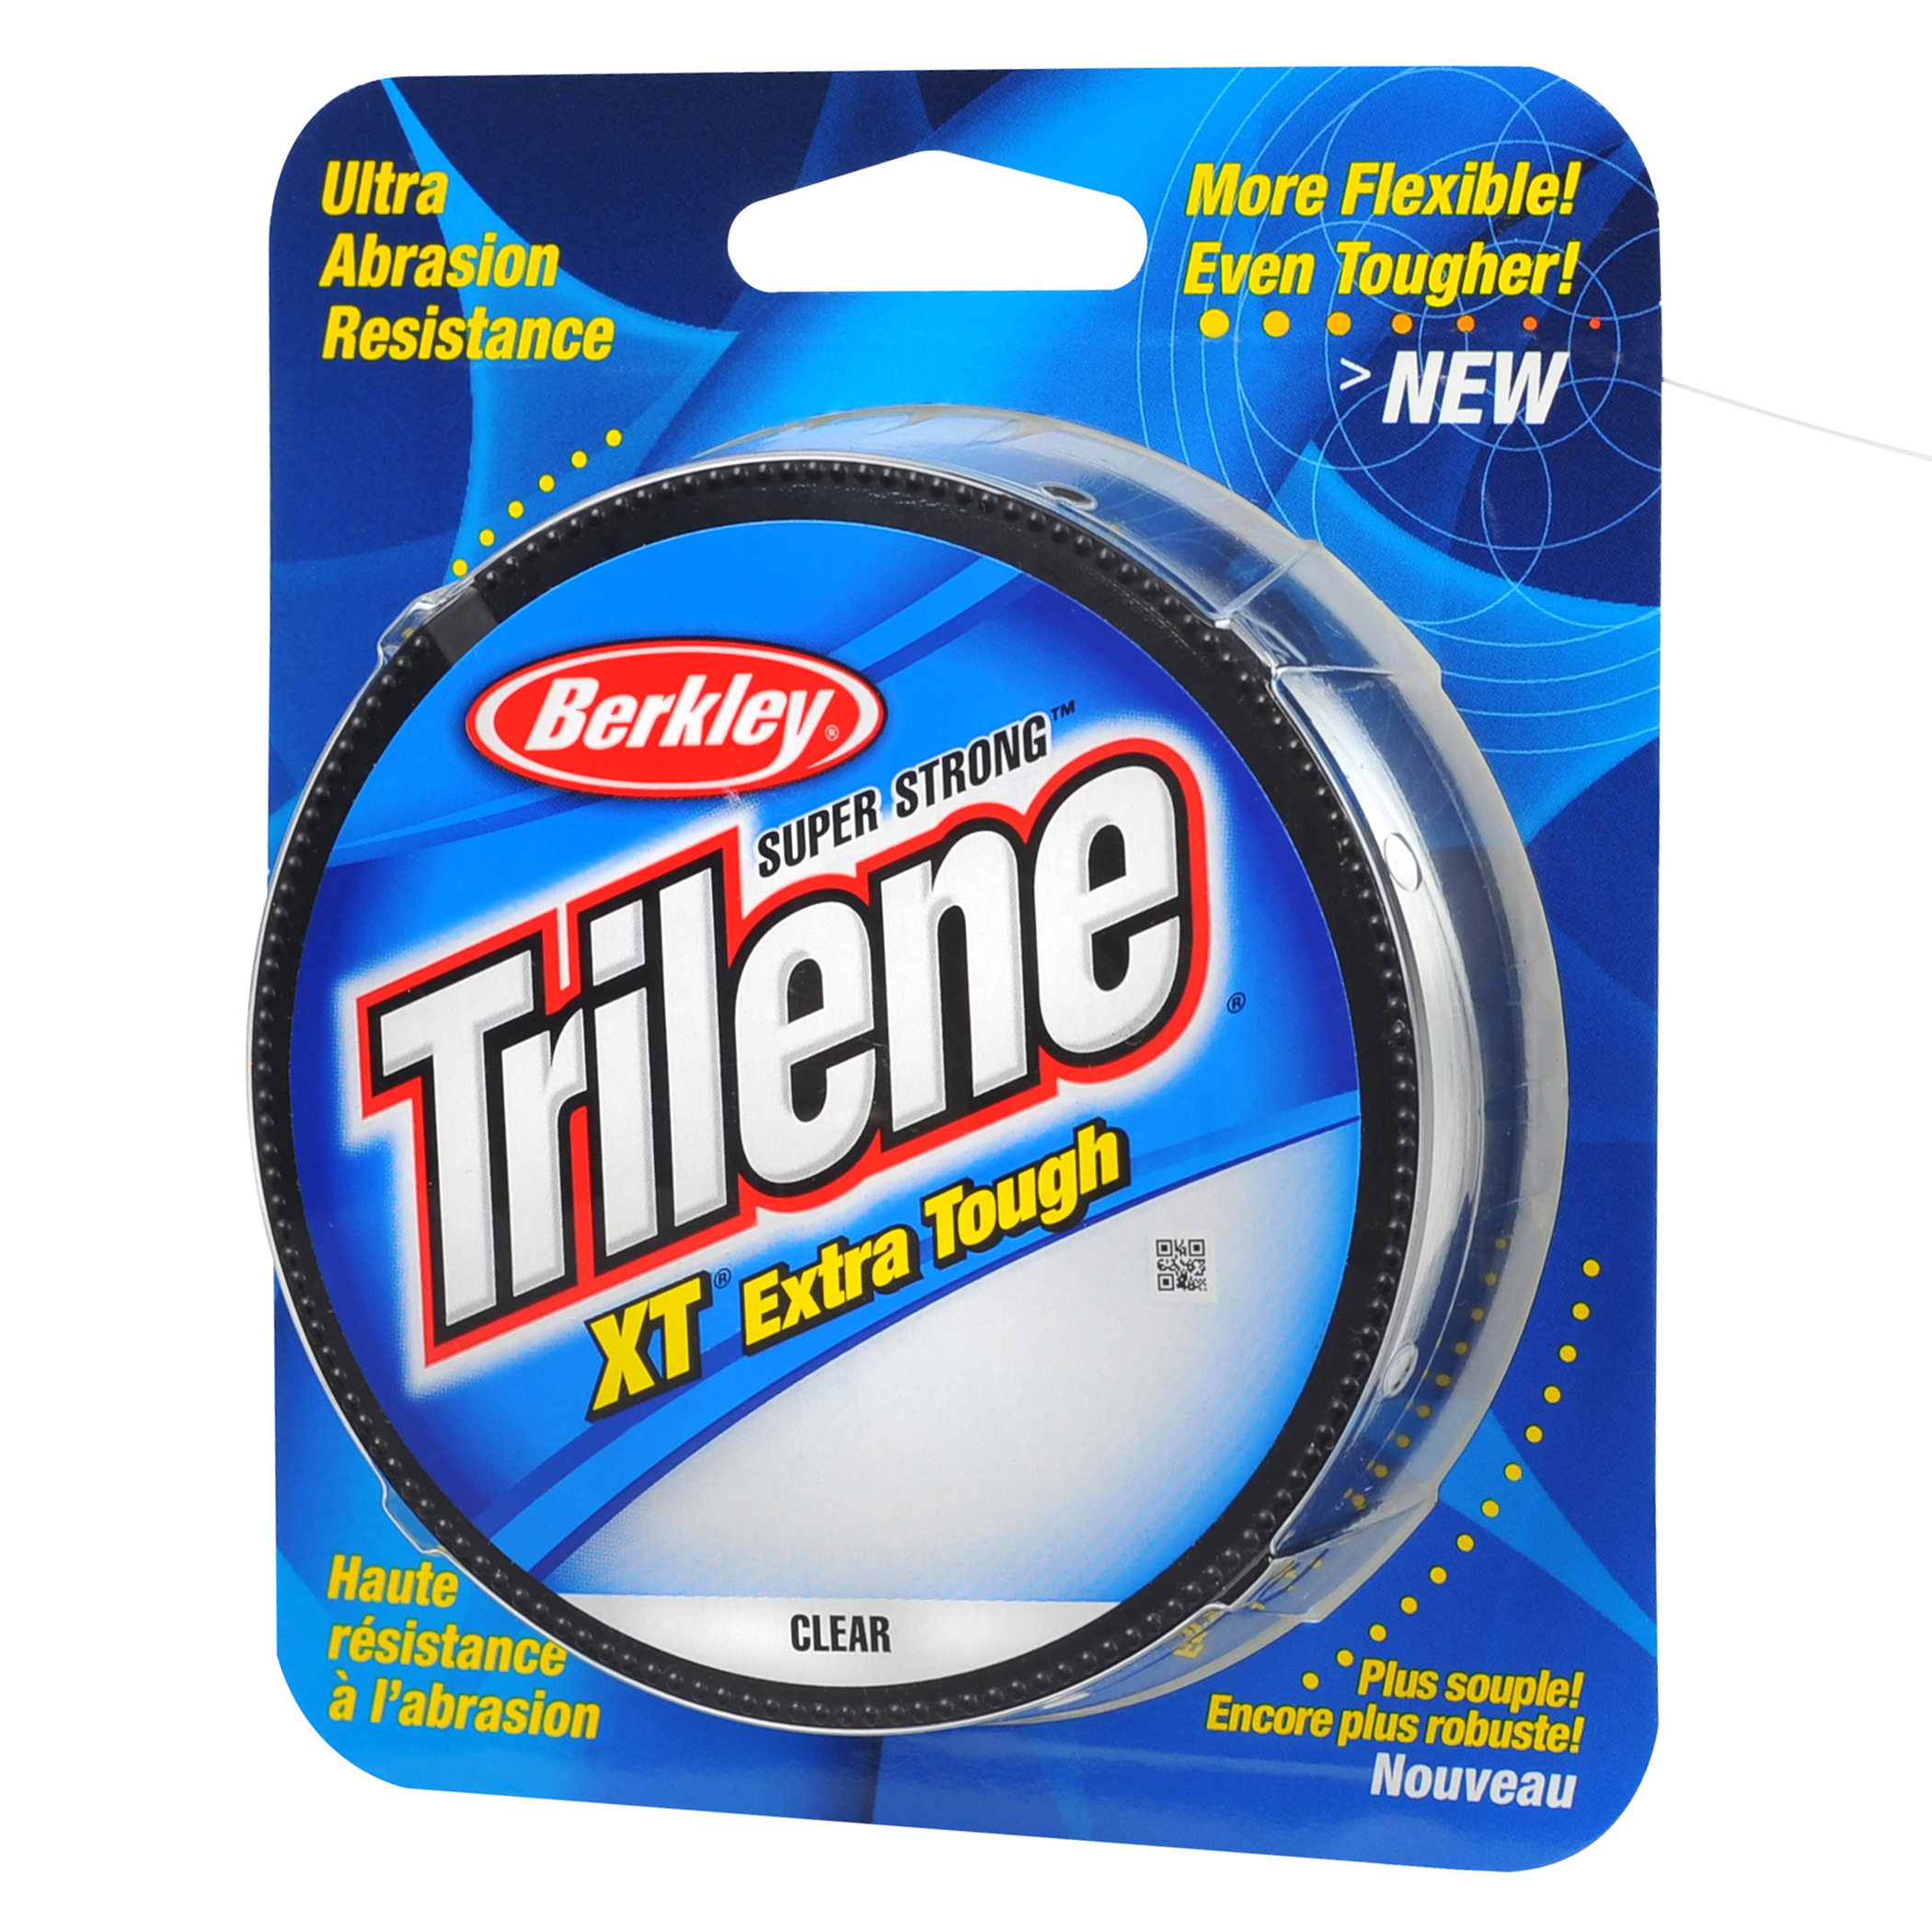 "Berkley Trilene XT Monofilament Line Spool 330 Yards, 0.008"" Diameter, 4 lb Breaking Strength, Clear"